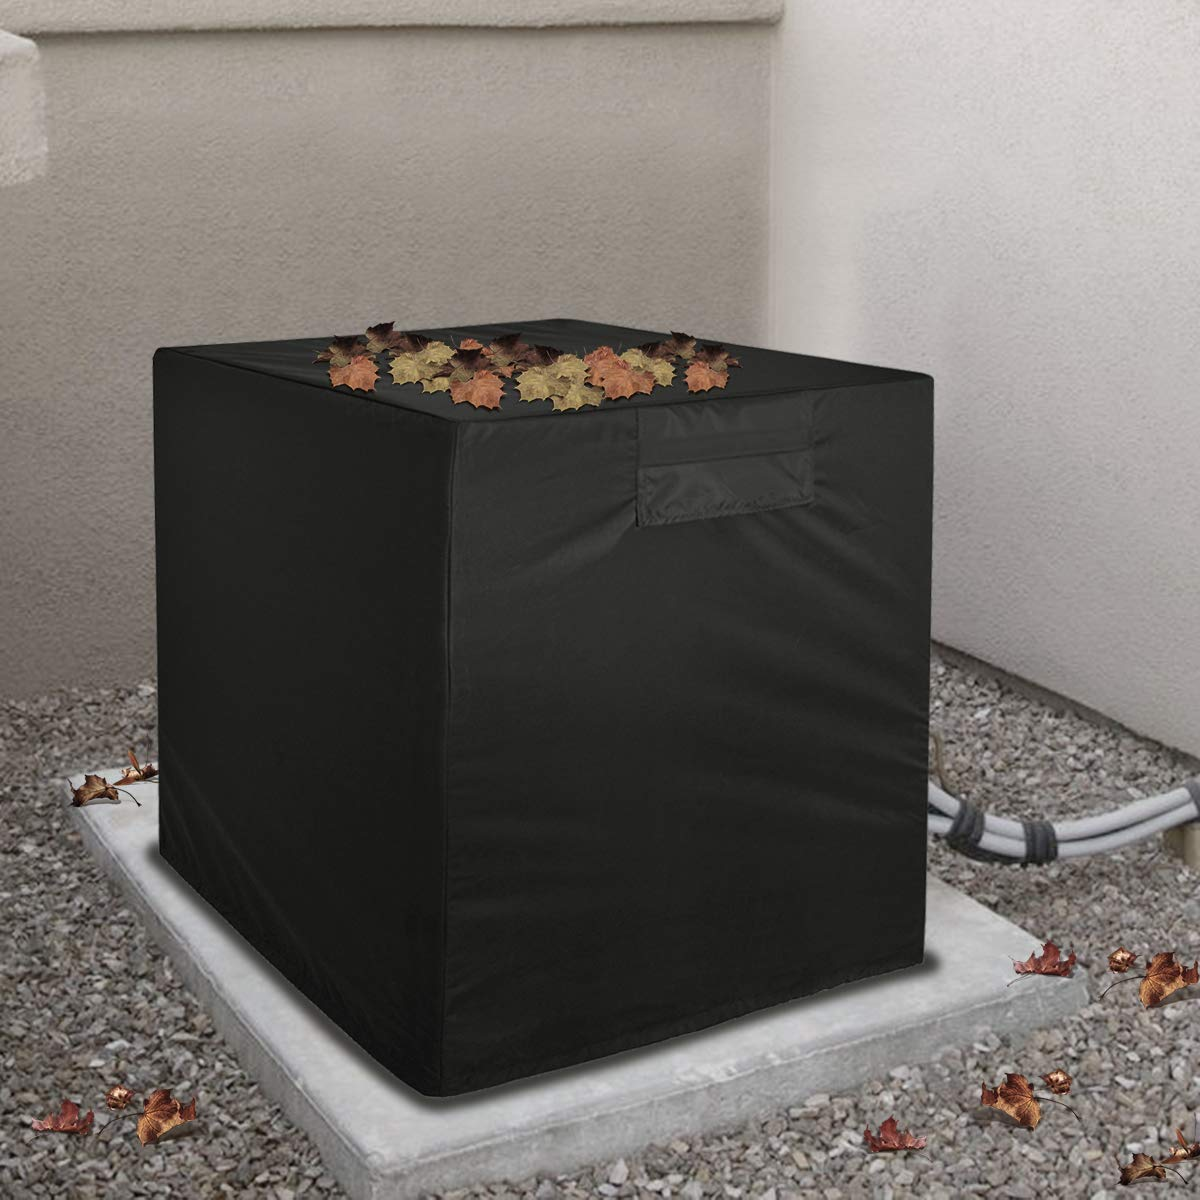 Foozet Central Air Conditioner Covers for Outside Units 26x26x32 by Foozet